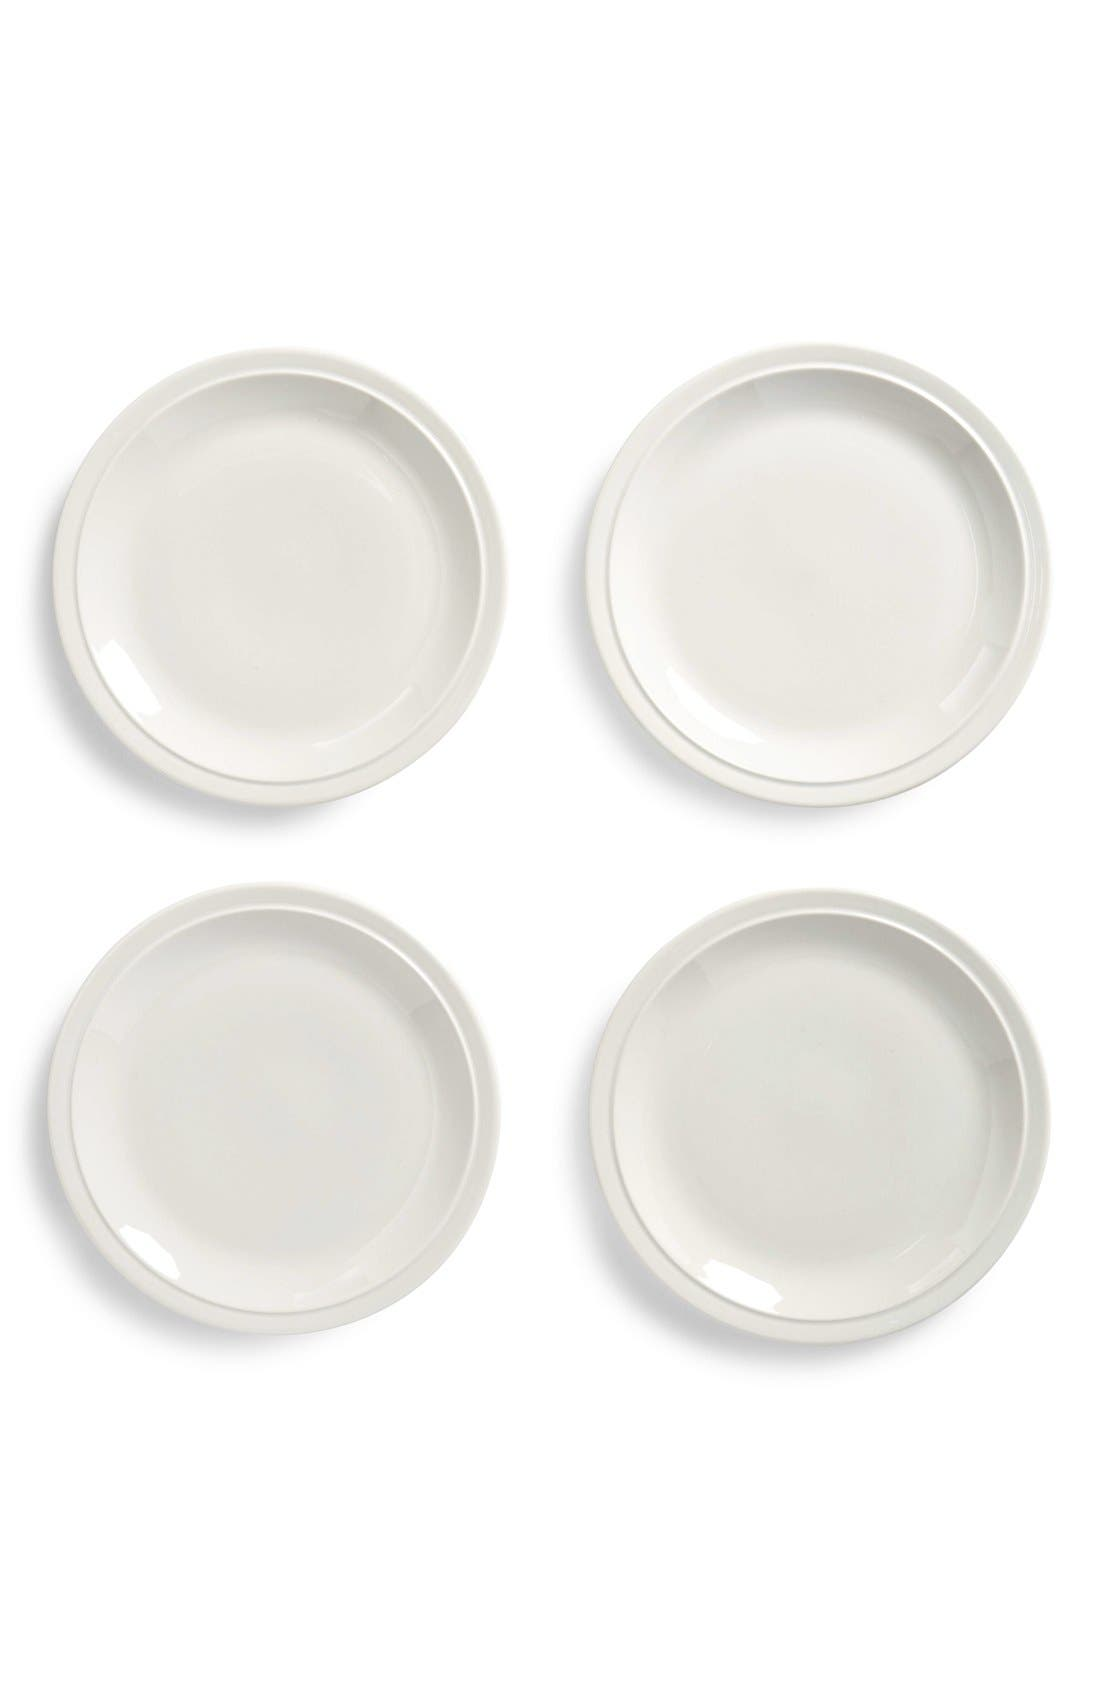 Nordstrom at Home Madrona Set of 4 Salad Plates ($32 Value)